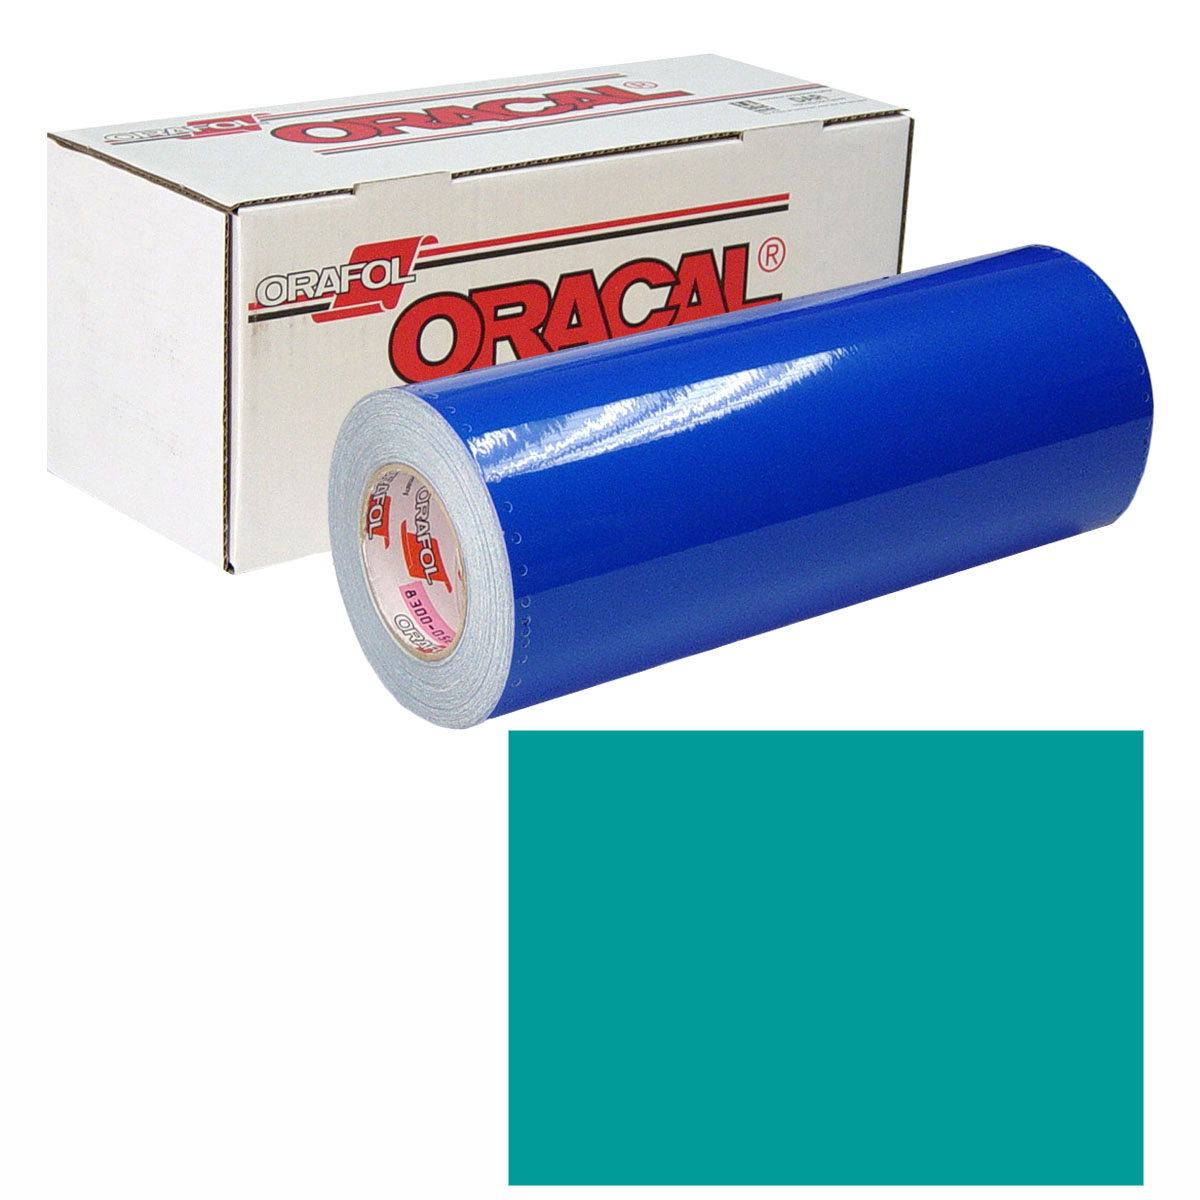 ORACAL 631 Unp 48in X 50yd 054 Turquoise